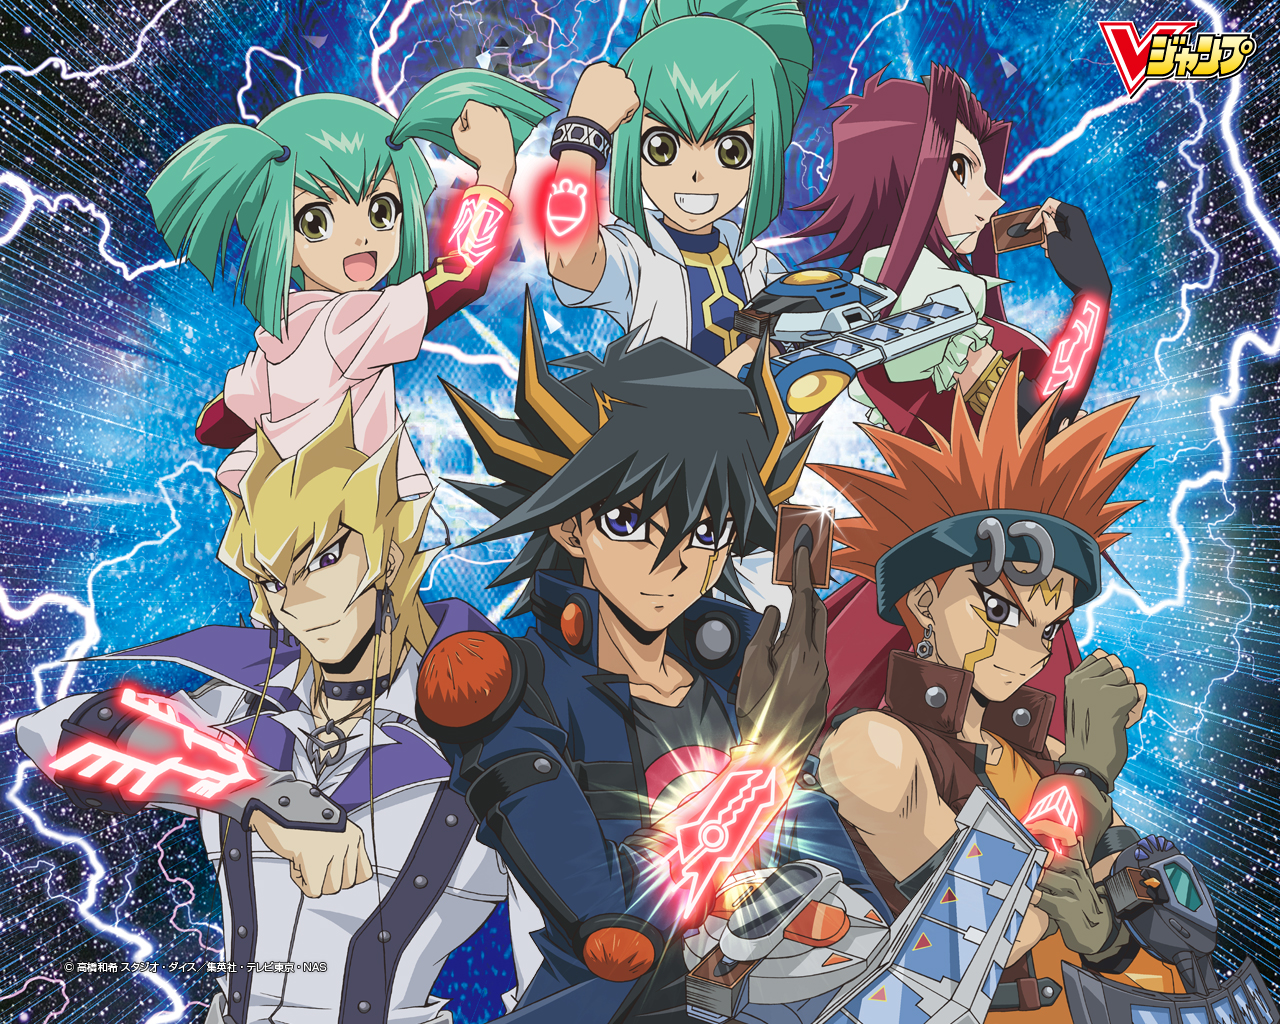 Yu gi oh 5ds subtitle indonesia